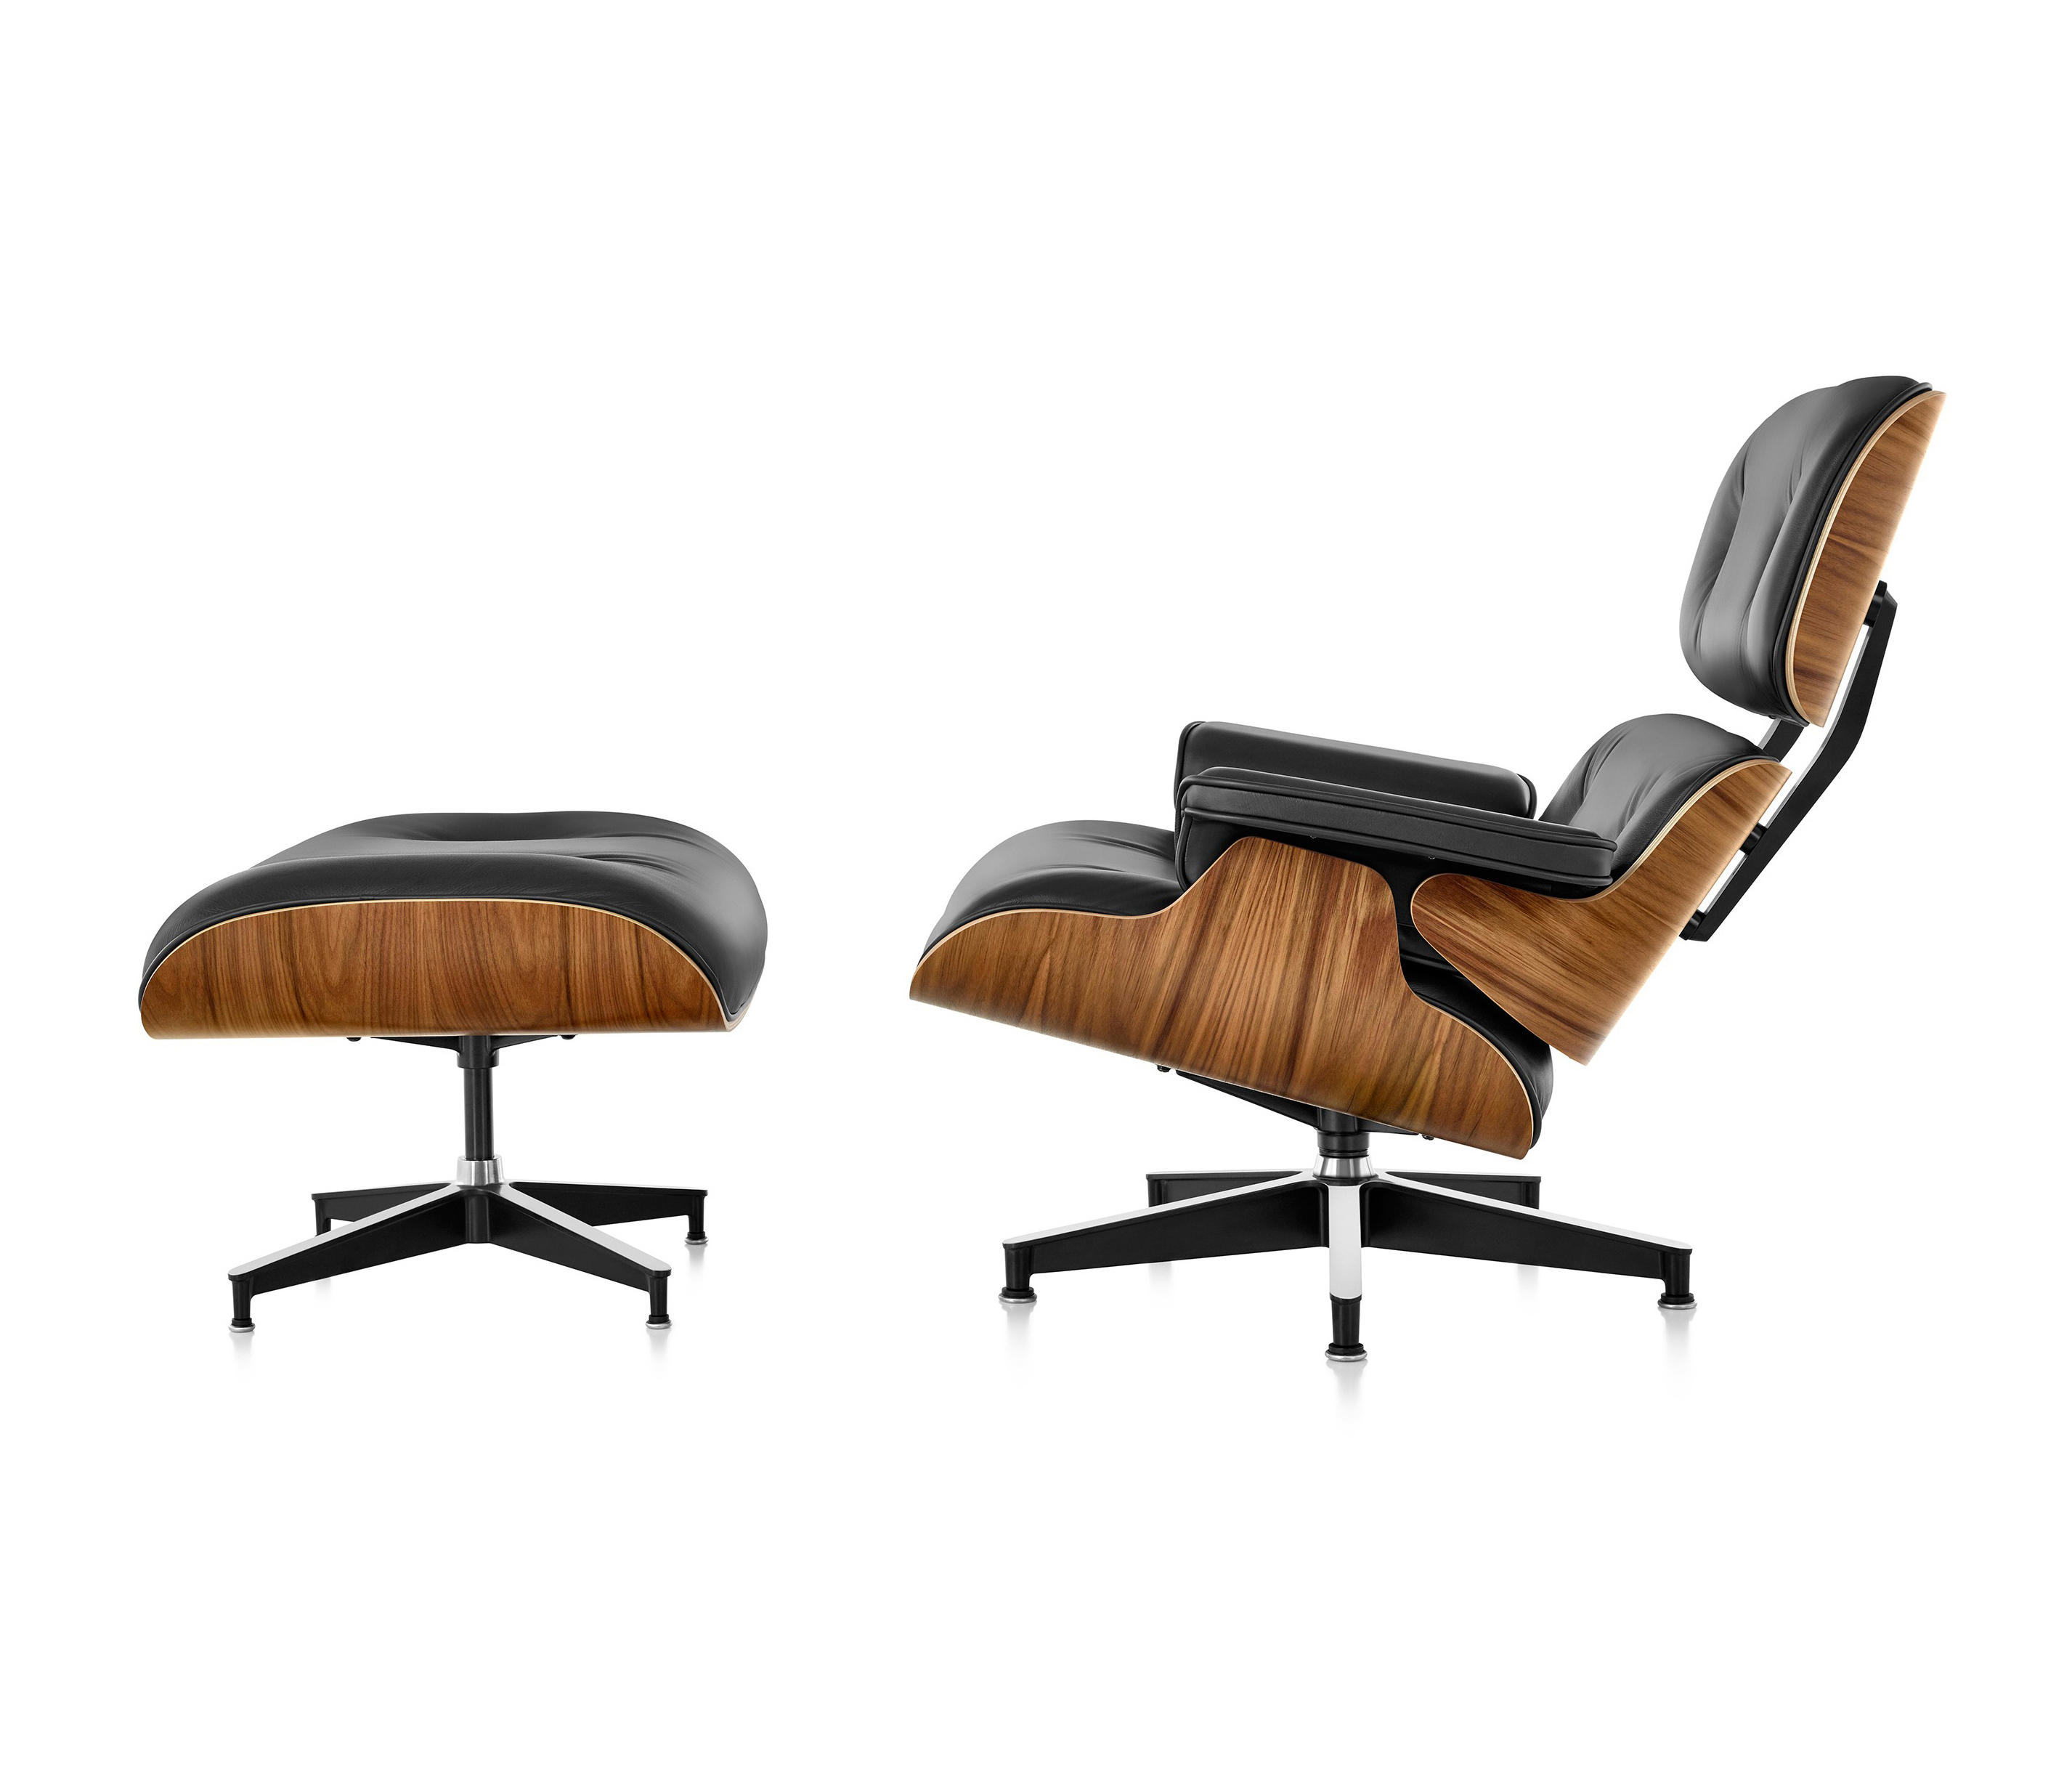 eames lounge chair and ottoman lounge chairs from herman. Black Bedroom Furniture Sets. Home Design Ideas